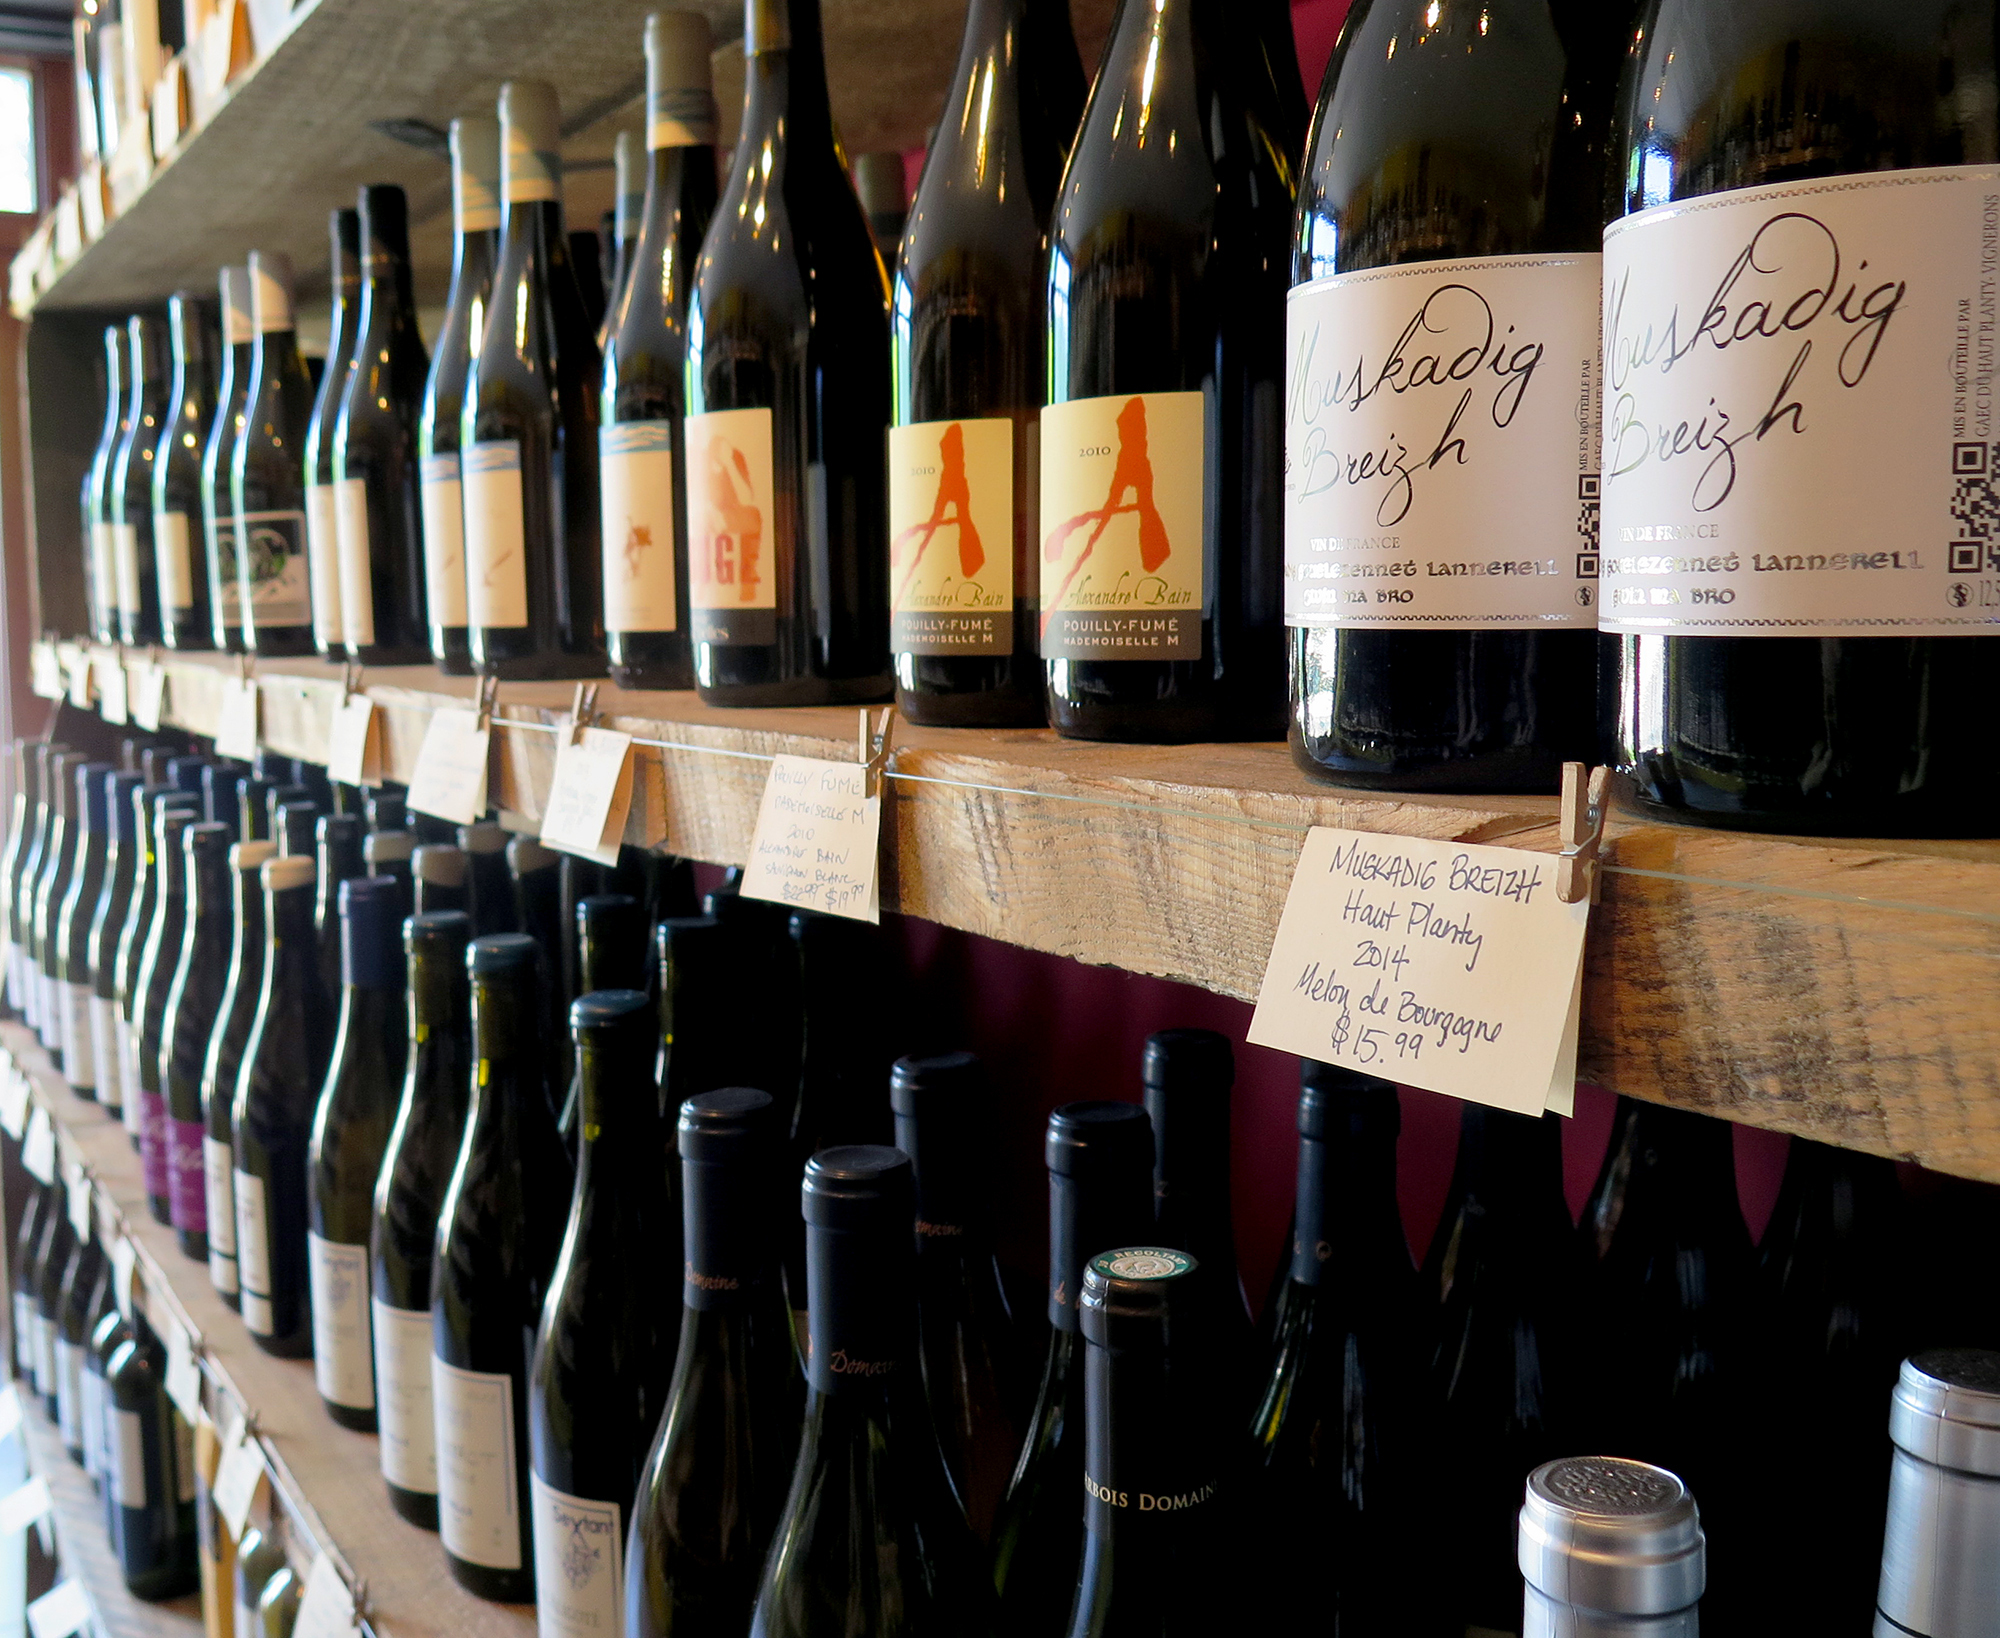 Bottles for sale at Passage de la Fleur, a natural wine shop in Brooklyn, N.Y. For some, natural wines must be completely unadulterated — without the use of sugar, clarifiers or other additives common in modern winemaking. Other natural winemakers, however, will use a little sulfur dioxide or added yeast to correct problems, according to Stephen Meuse, a wine buyer in Massachusetts.